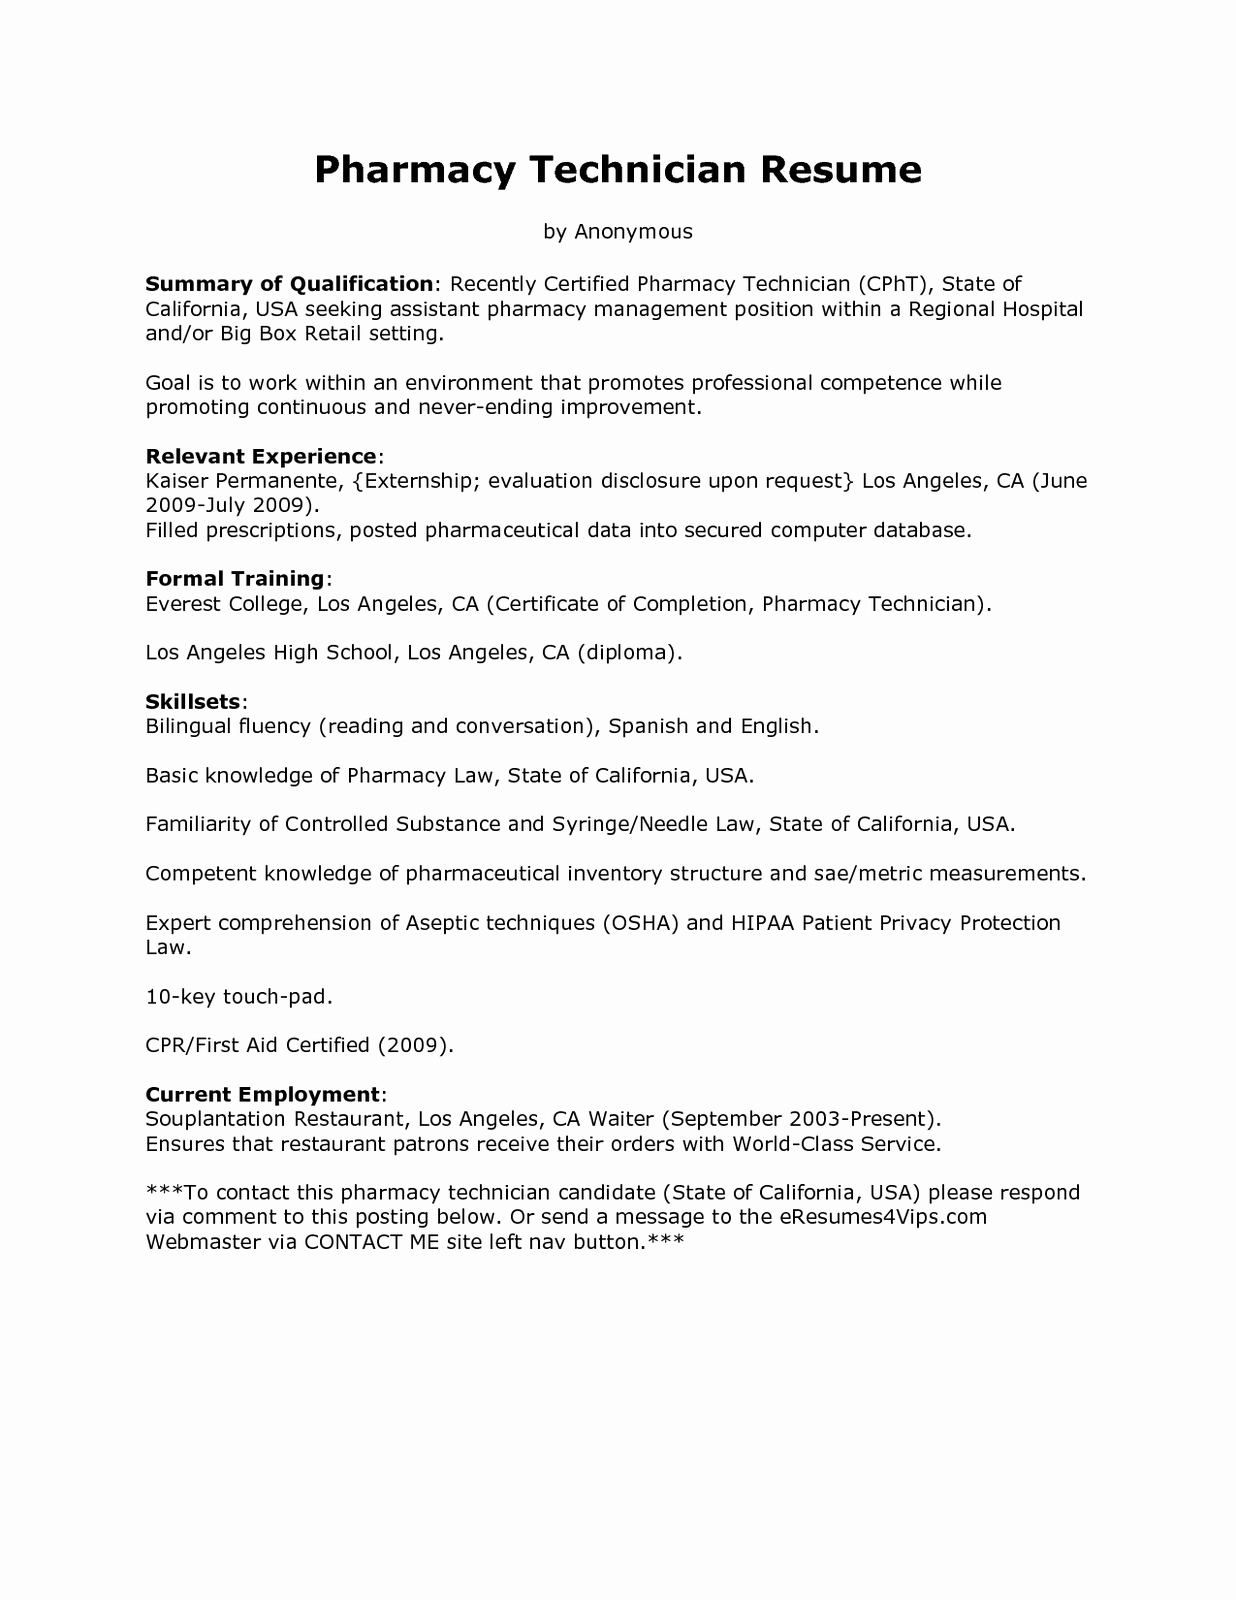 Pharmacy Tech Resume Samples Best Of Sample Resume for Pharmacy Technician